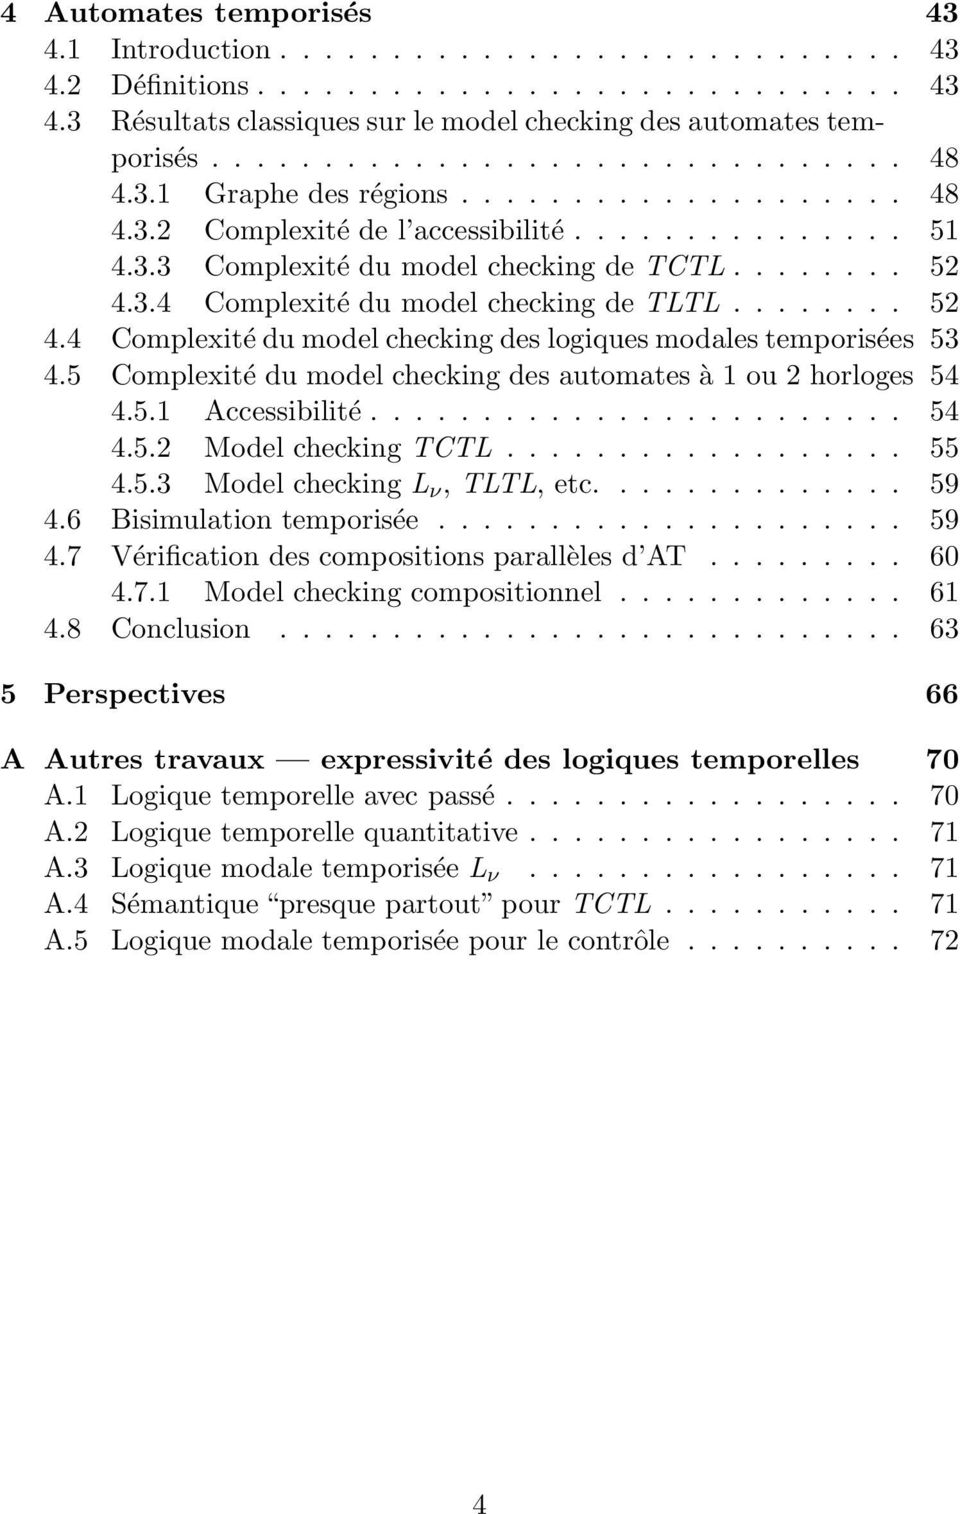 ....... 52 4.4 Complexité du model checking des logiques modales temporisées 53 4.5 Complexité du model checking des automates à 1 ou 2 horloges 54 4.5.1 Accessibilité........................ 54 4.5.2 Model checking TCTL.